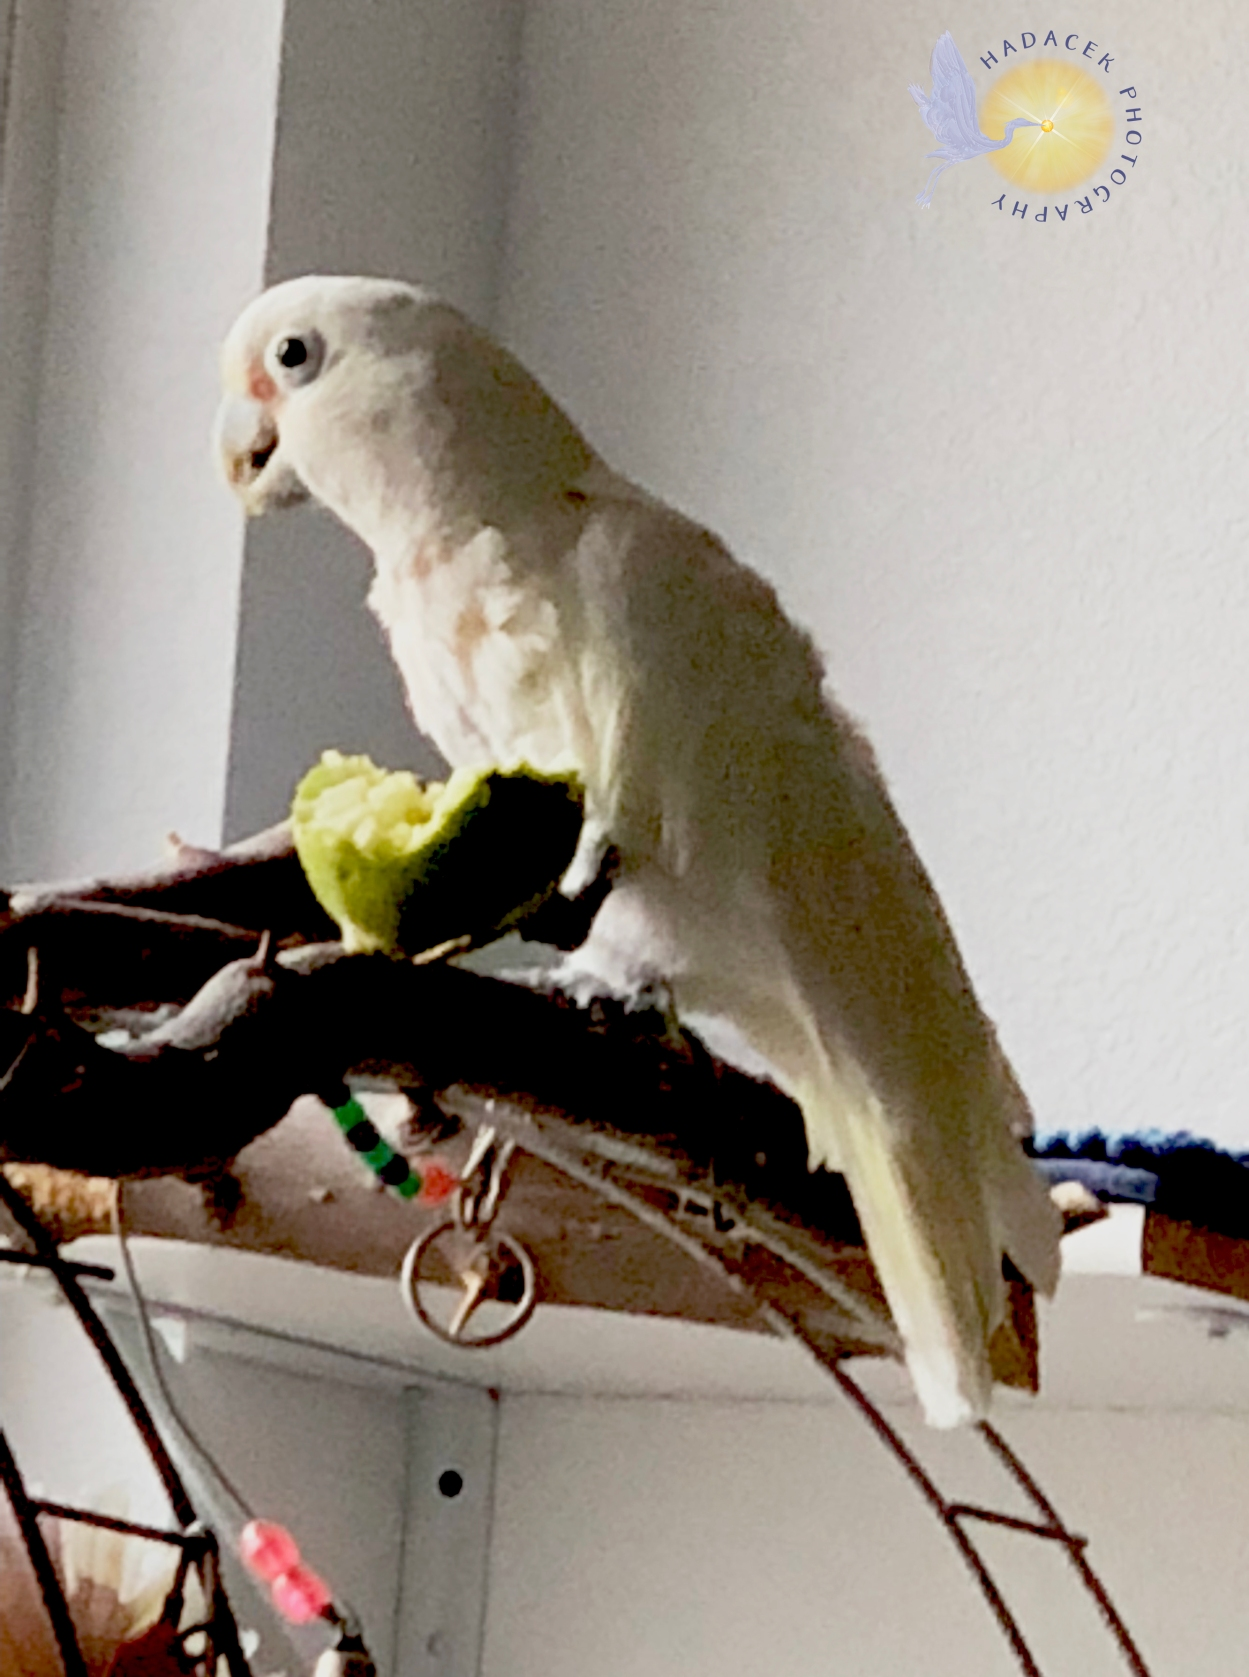 goffin's cockatoo, white parrot